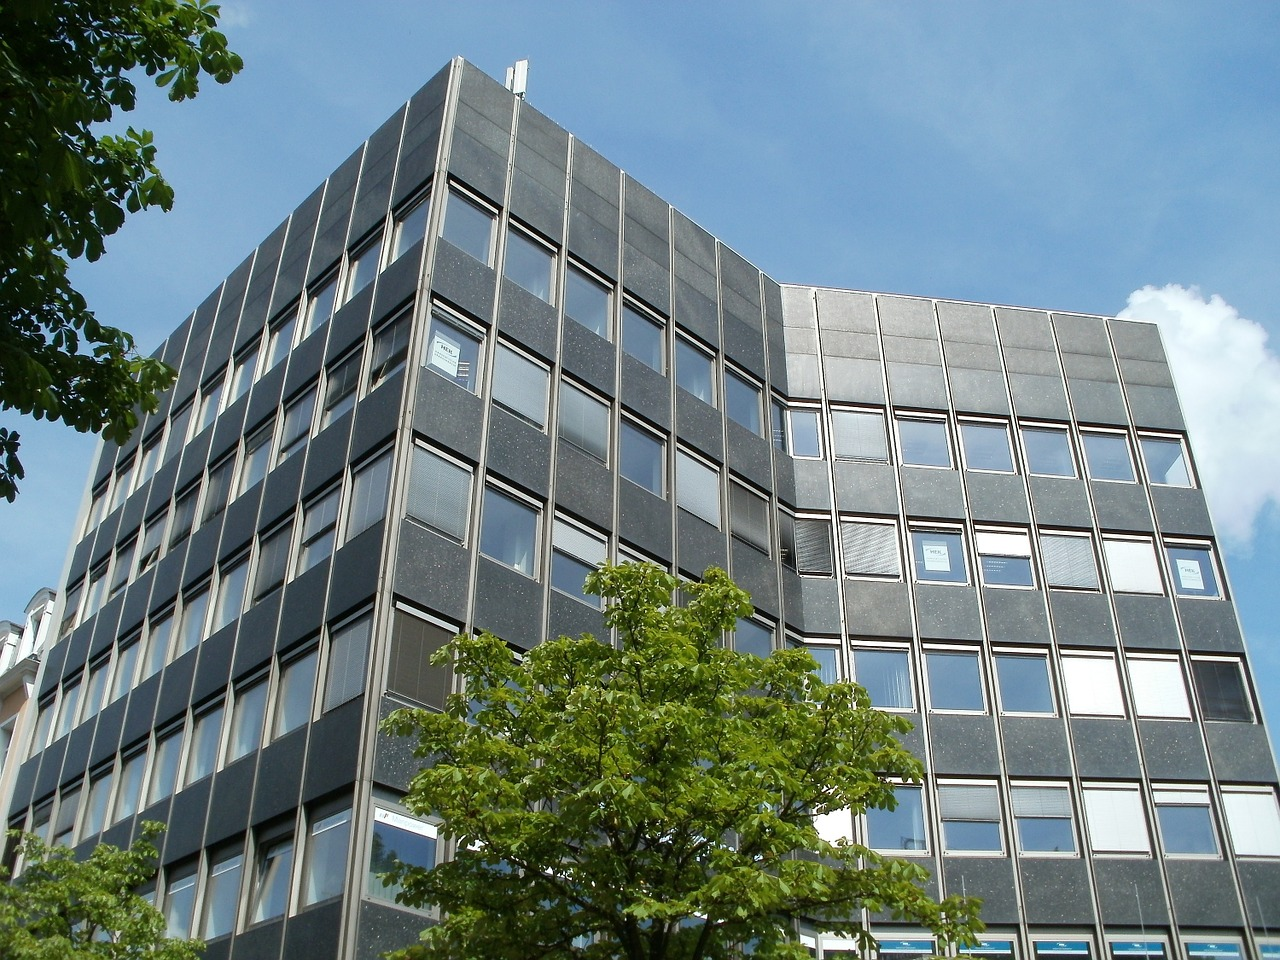 Commercial Roofing Flagstaff Polaris Roofing Systems